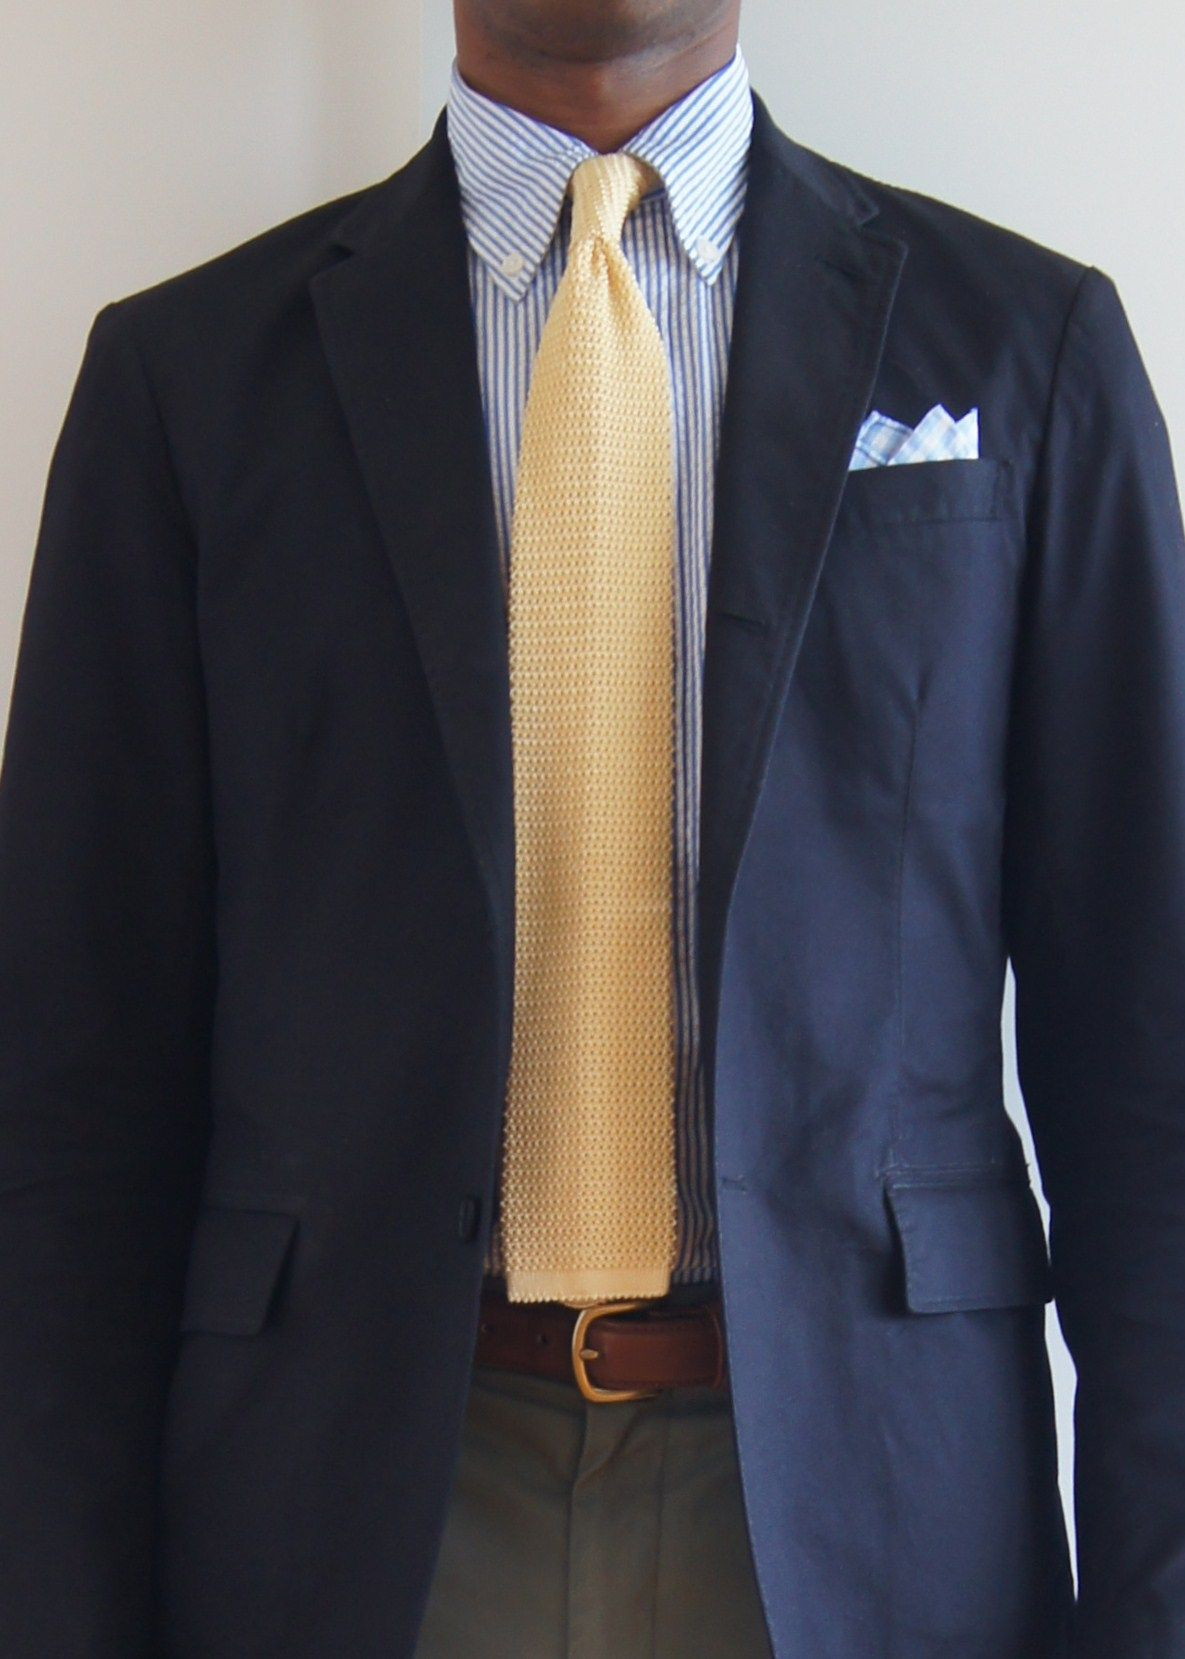 Yellow dress shirt what color tie with navy